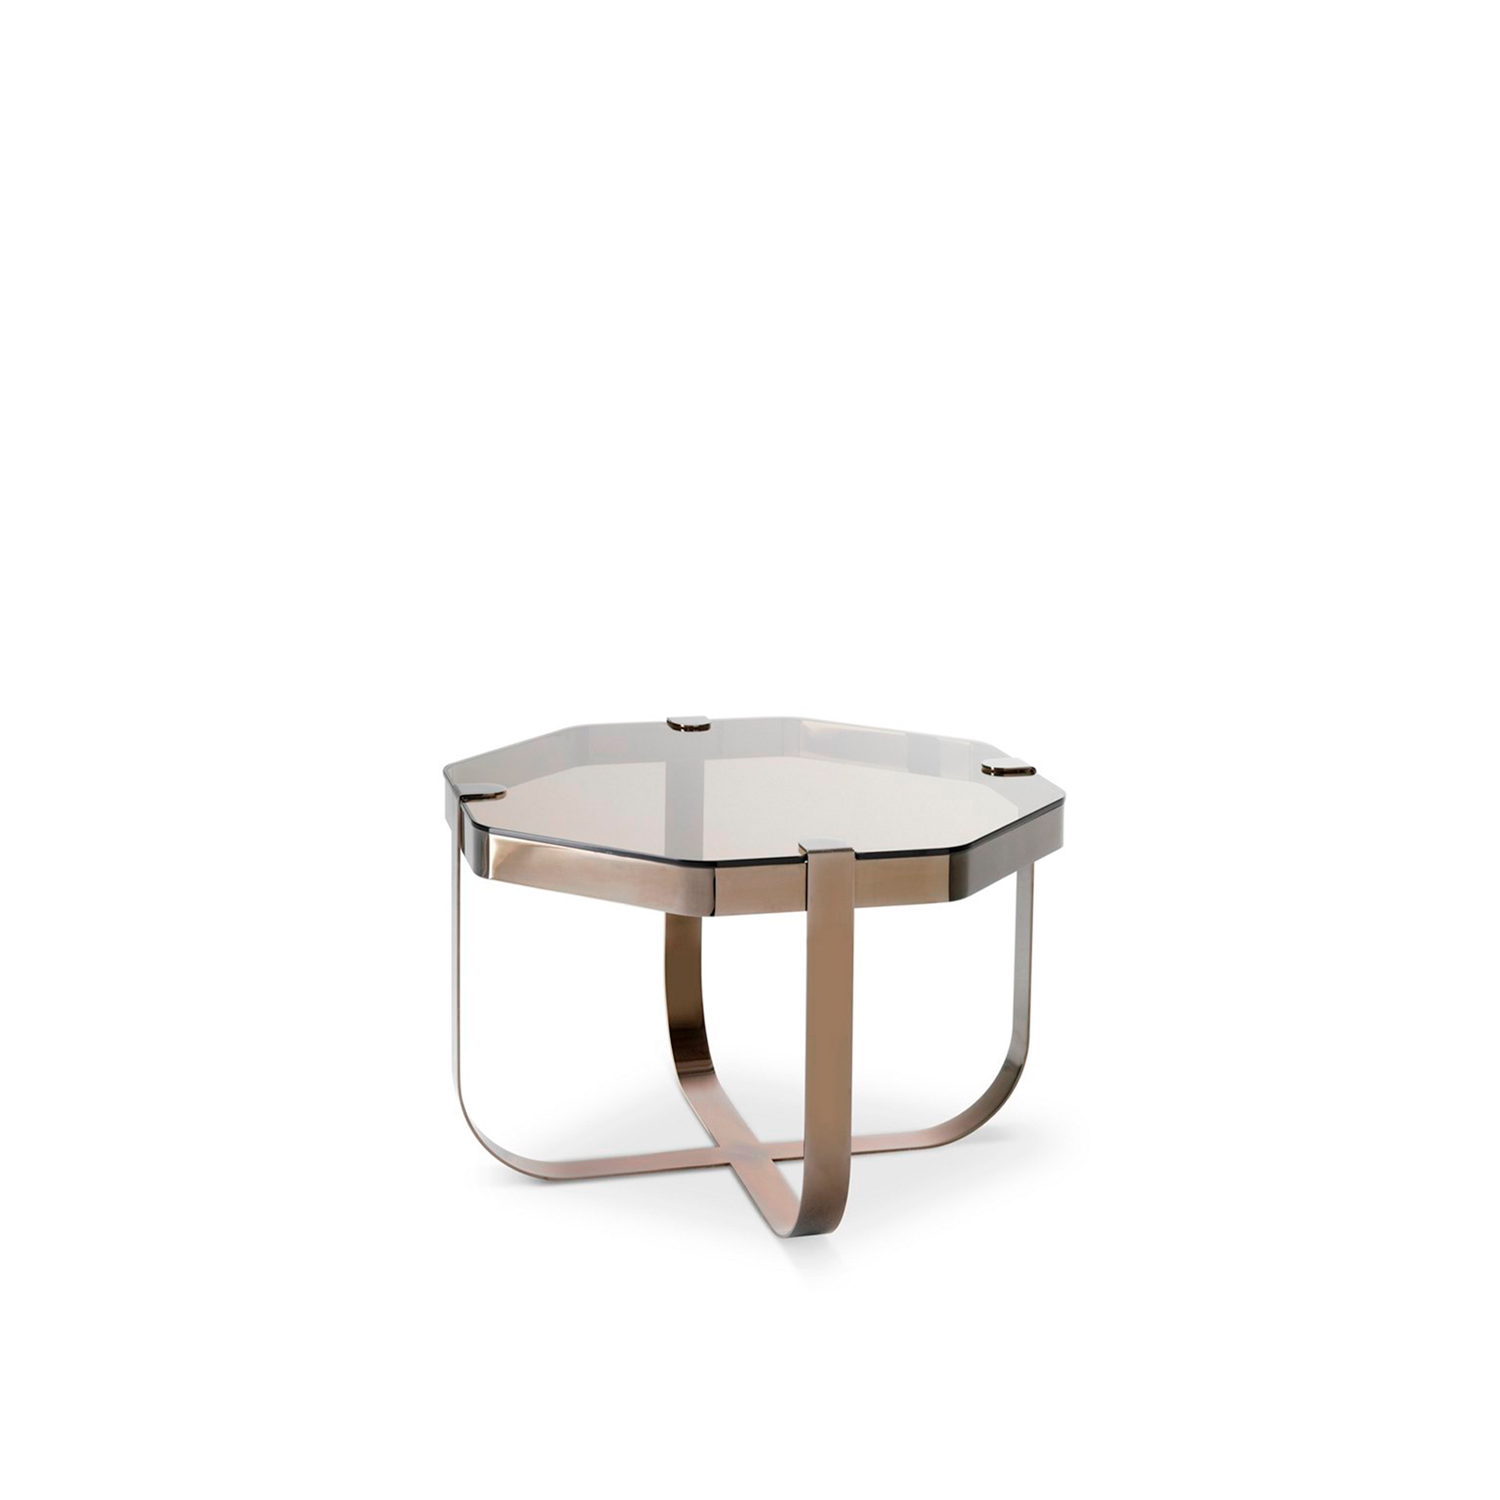 Ring Octagonal Coffee Table - Elegant like jewellery, the Ring coffee tables are inspired by raw cuts of precious stones prior to being mounted into rings.‎ The choice of materials is aimed to emphasise this inspiration behind the collection.‎ The metal base structures are available in copper, brass, steel and nickel, each of which corresponds to a geometric form.‎ Like in jewellery design, the glass tops in transparent or light colours are literally set onto the base structures.‎